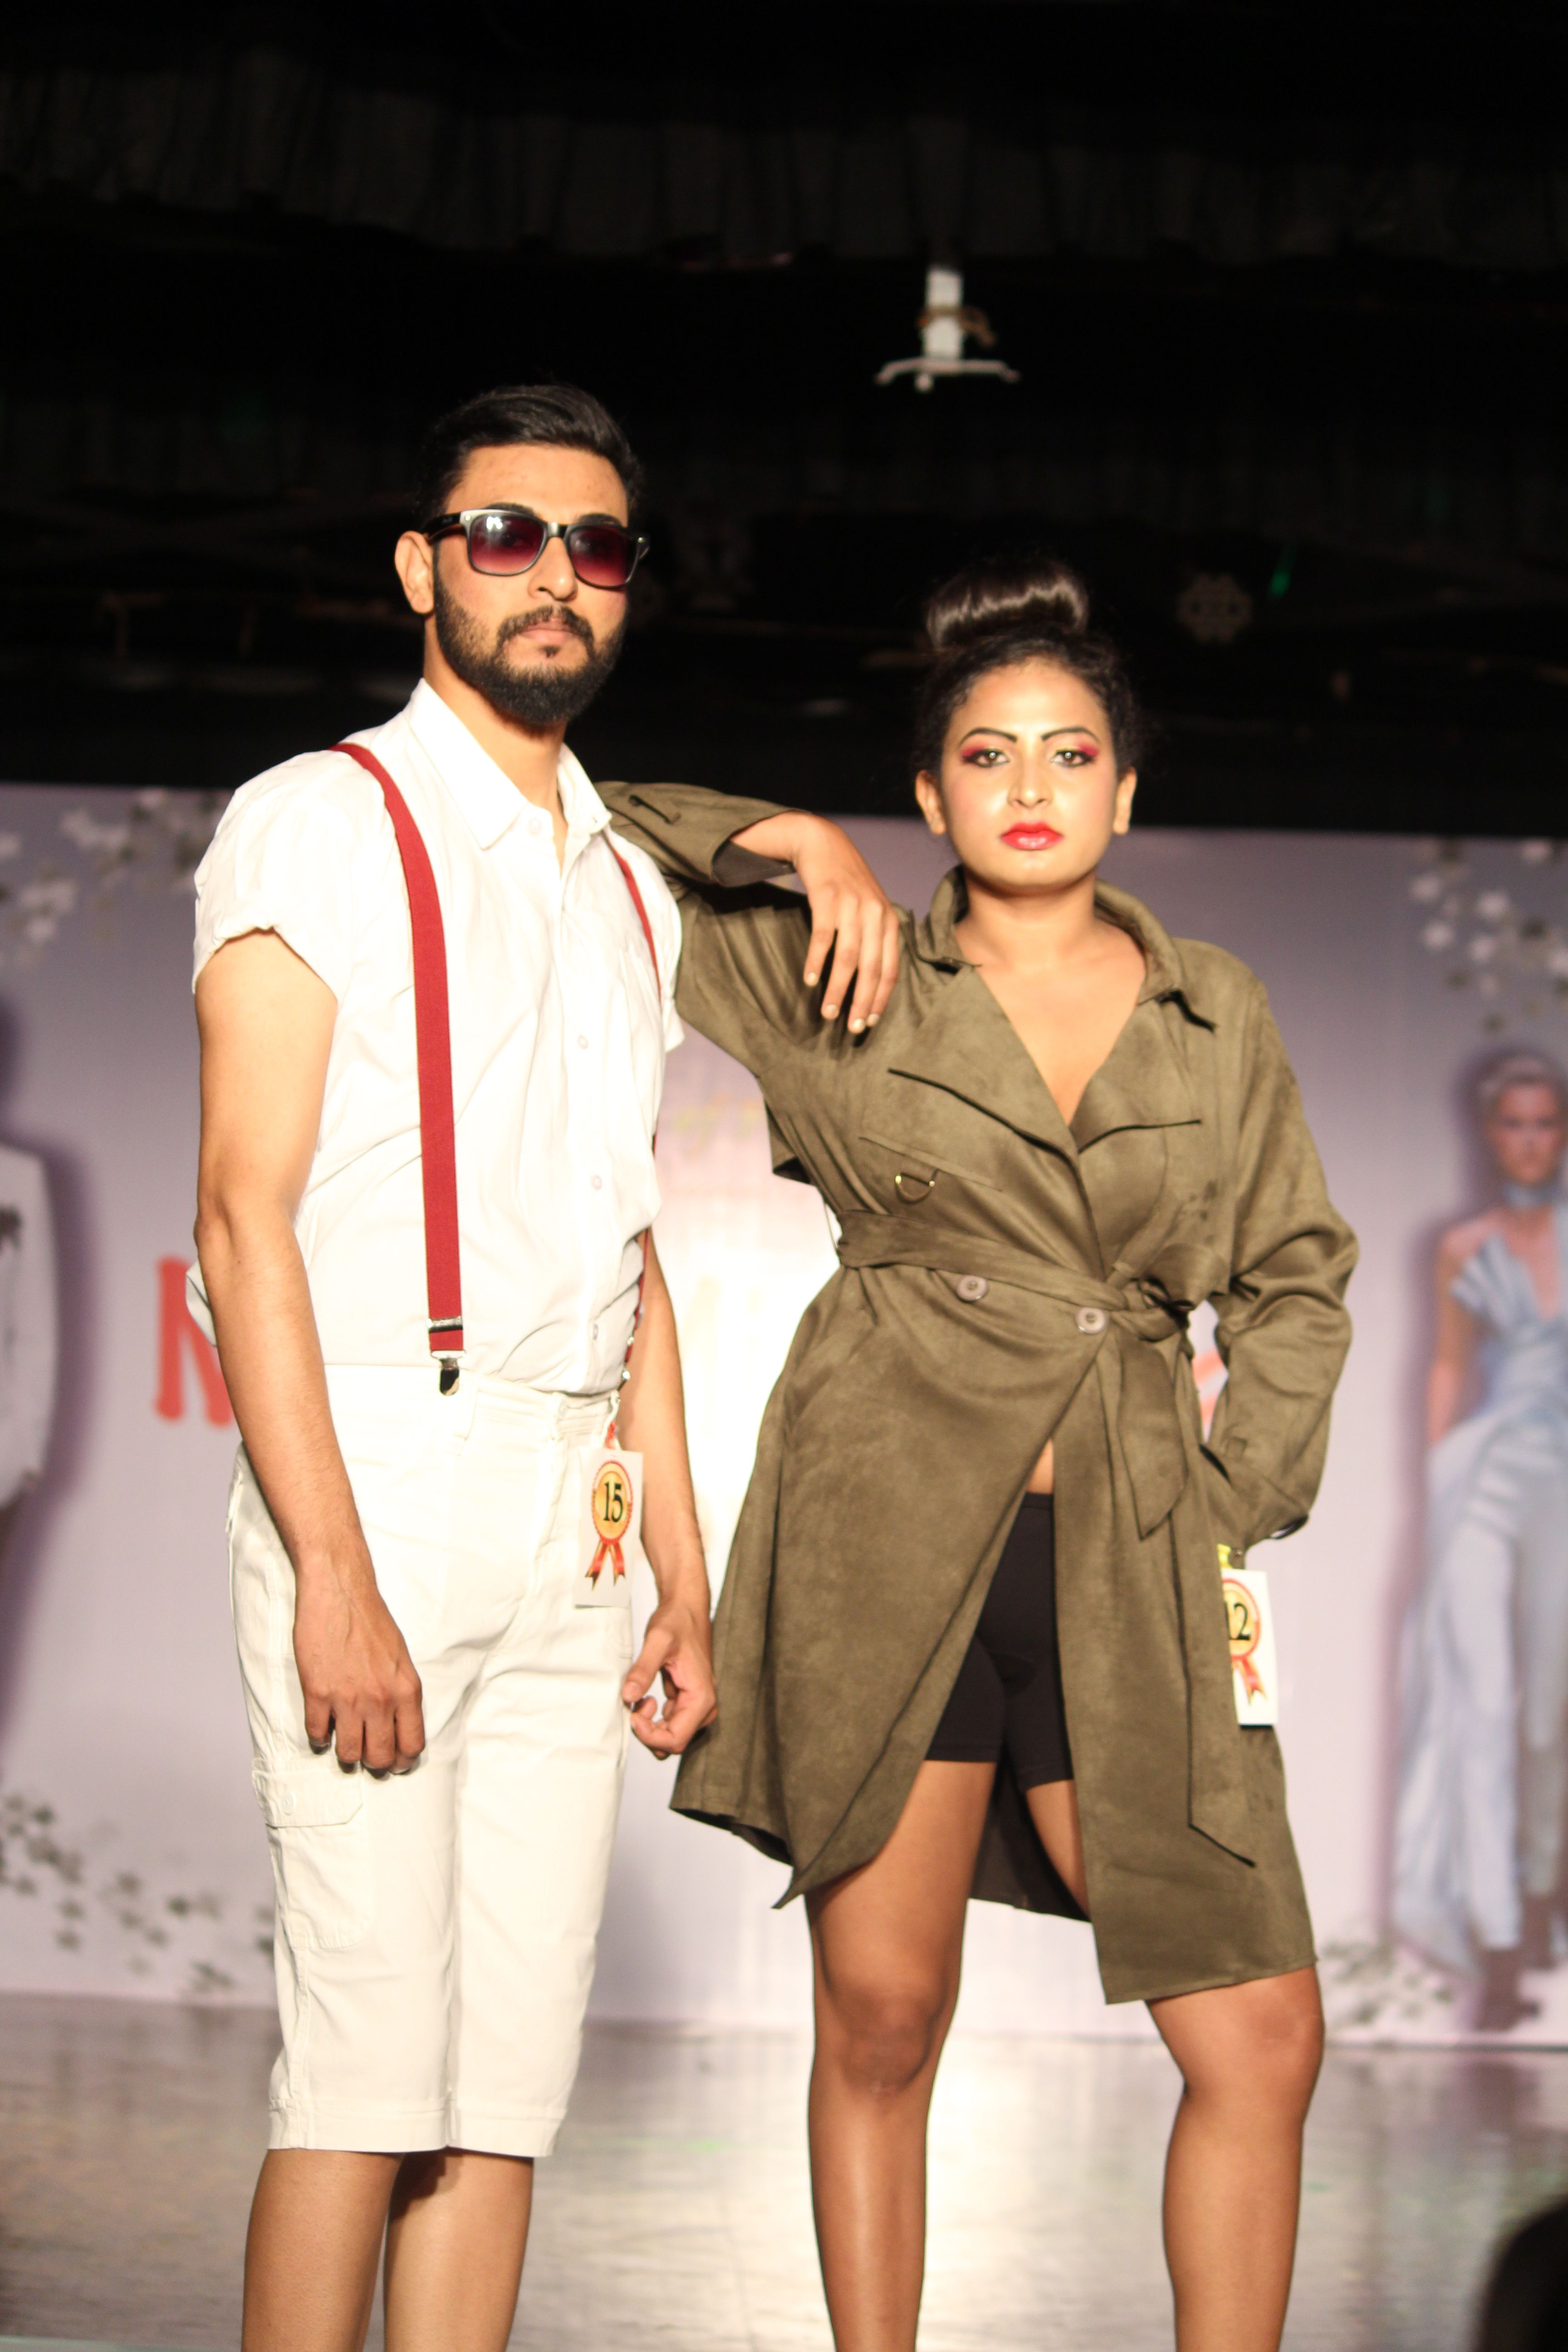 The Mr Miss India 2019 Competition Was Organized In Infant School Of Fashion Mediaconnect Mediaconnectevent Mediaconne Miss India Fashion Public Relations